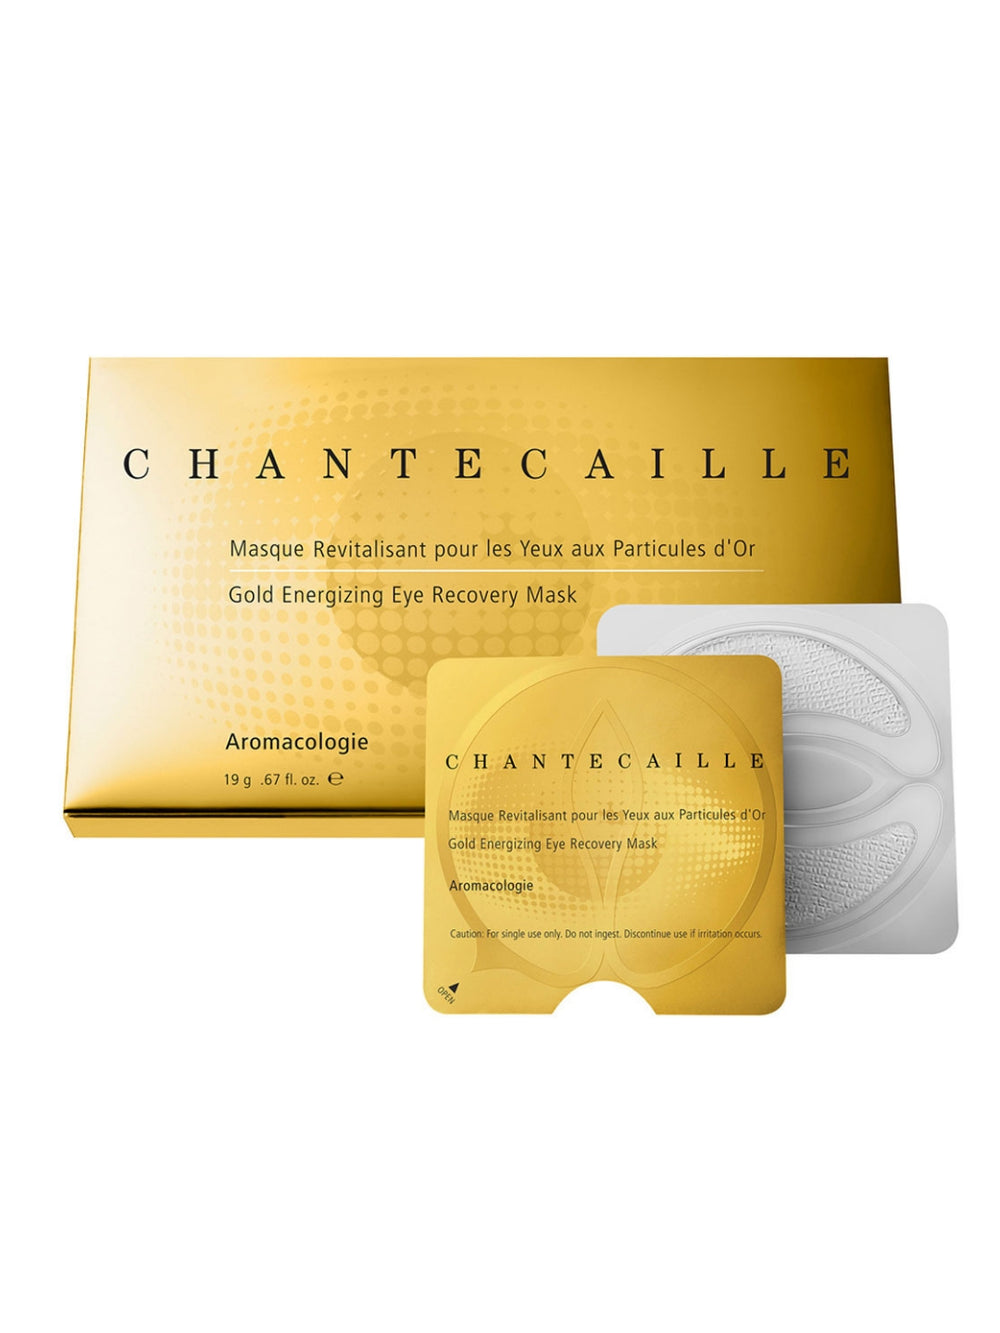 chantecaille-gold-energising-eye-recovery-mask